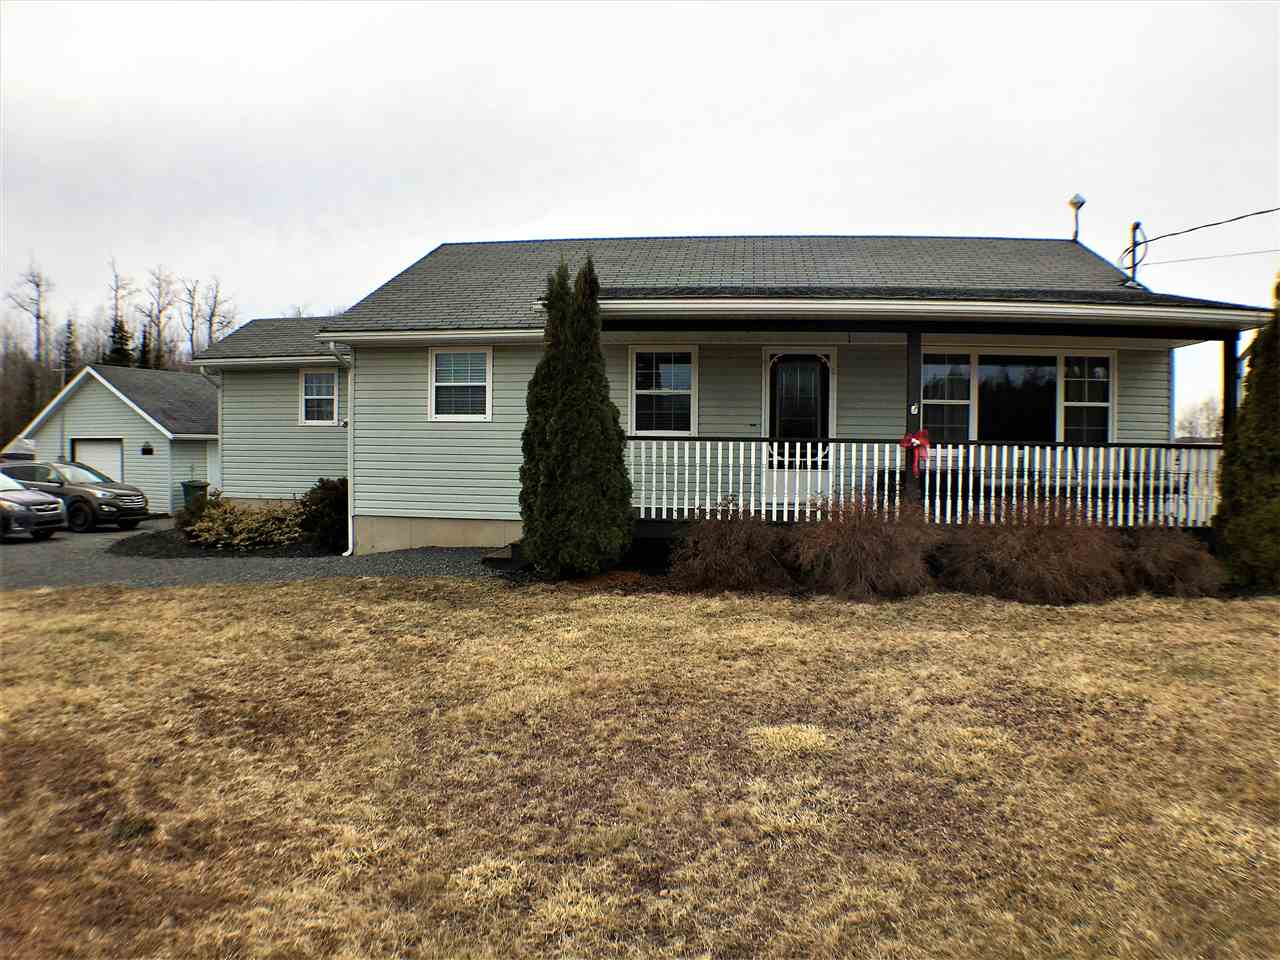 Main Photo: 28 Holmes Lane in Union Centre: 108-Rural Pictou County Residential for sale (Northern Region)  : MLS®# 201805677